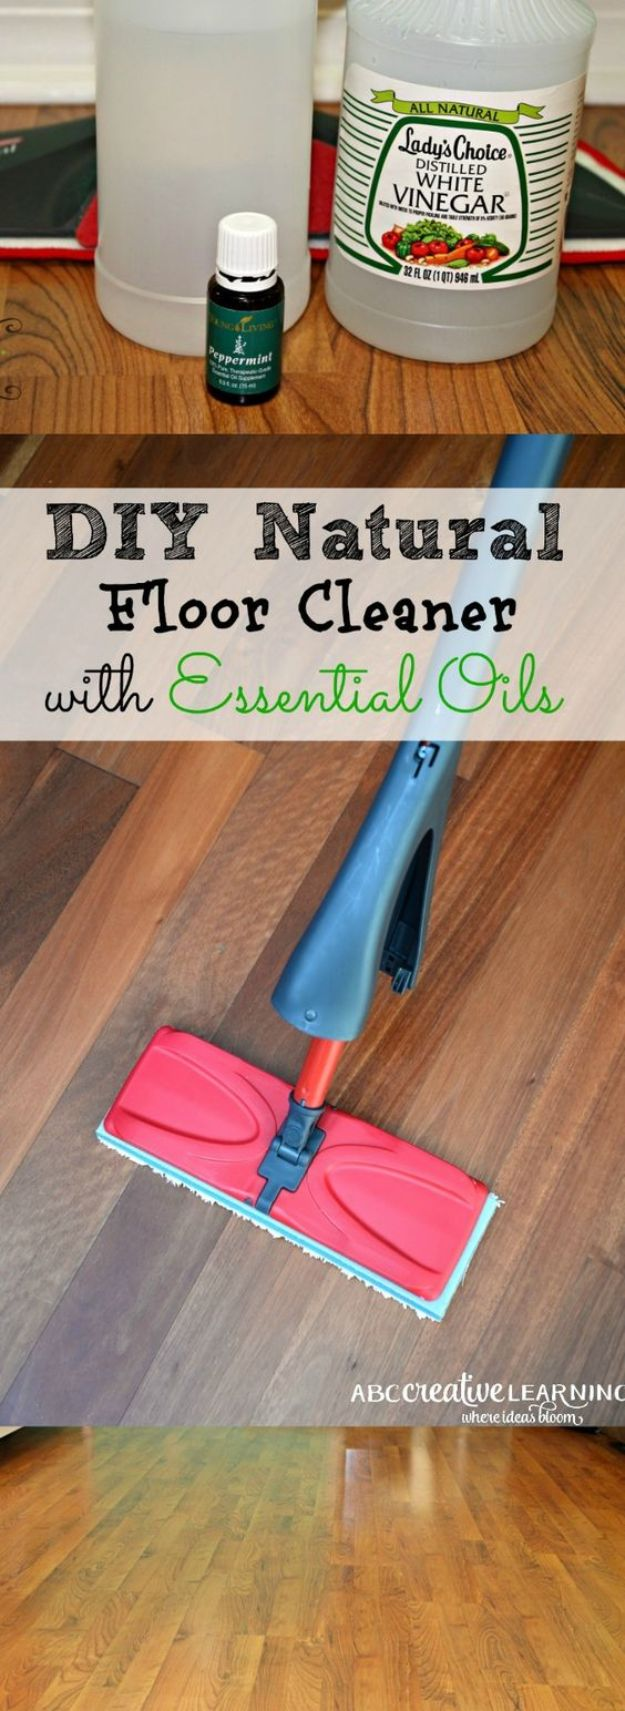 Homemade Cleaning Products - DIY Natural Floor Cleaner With Essential Oils - DIY Cleaners With Recipe and Tutorial - Make DIY Natural and ll Purpose Cleaner Recipes for Home With Vinegar, Essential Oils